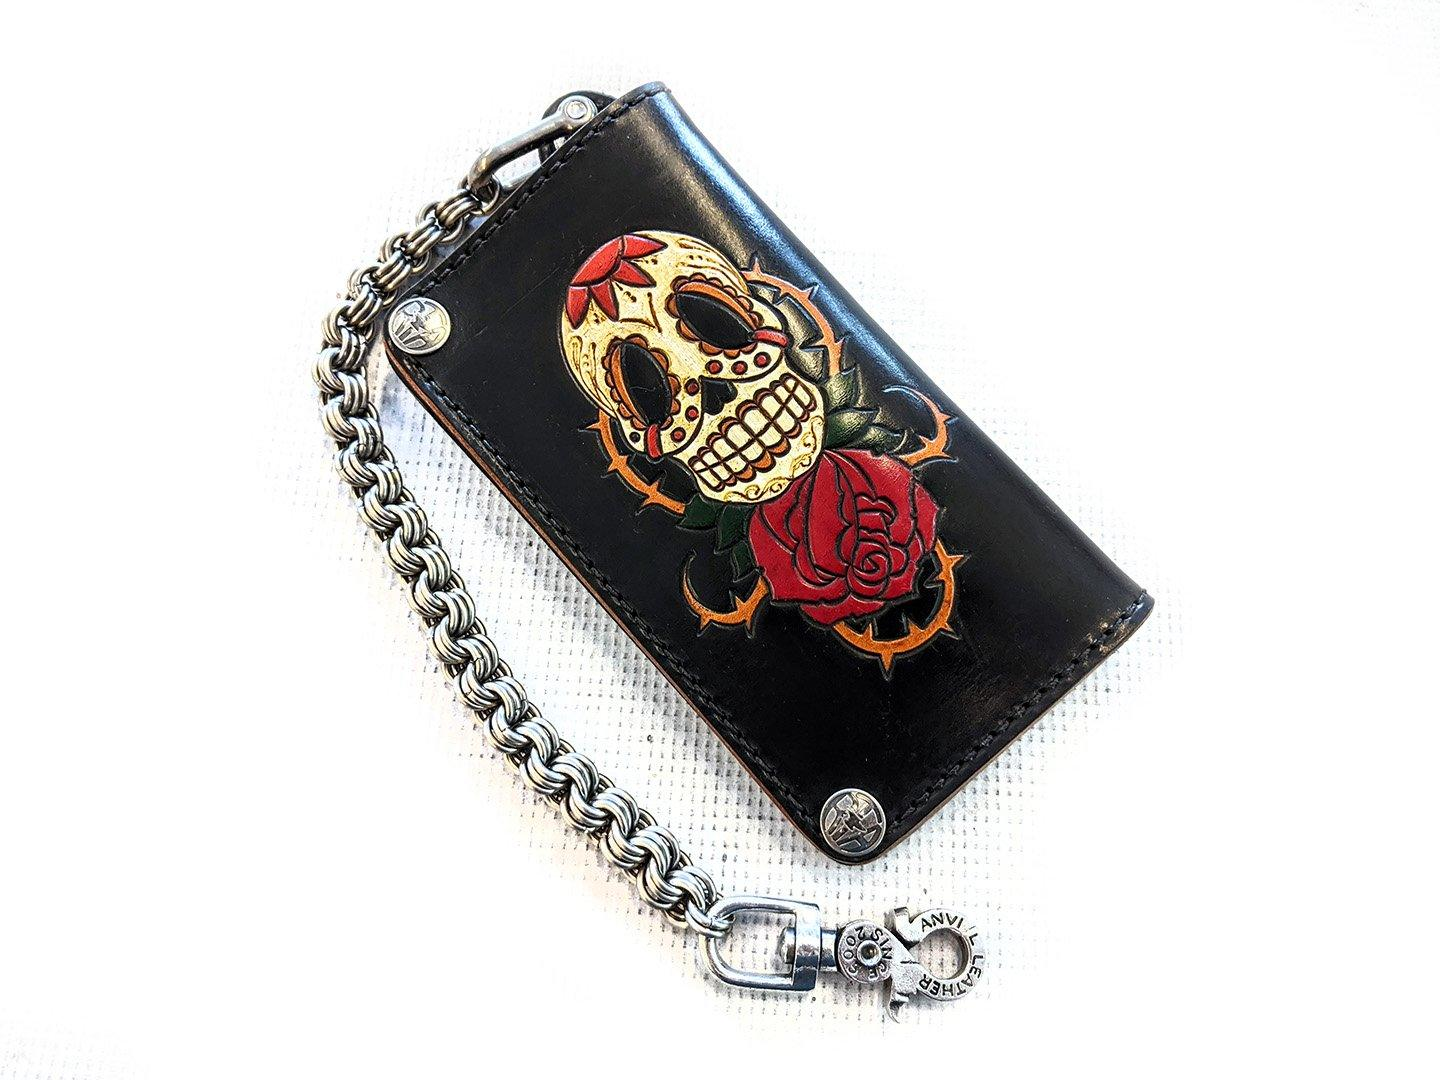 Hand Stained Long Biker Leather Chain Wallet - Skull and Rose